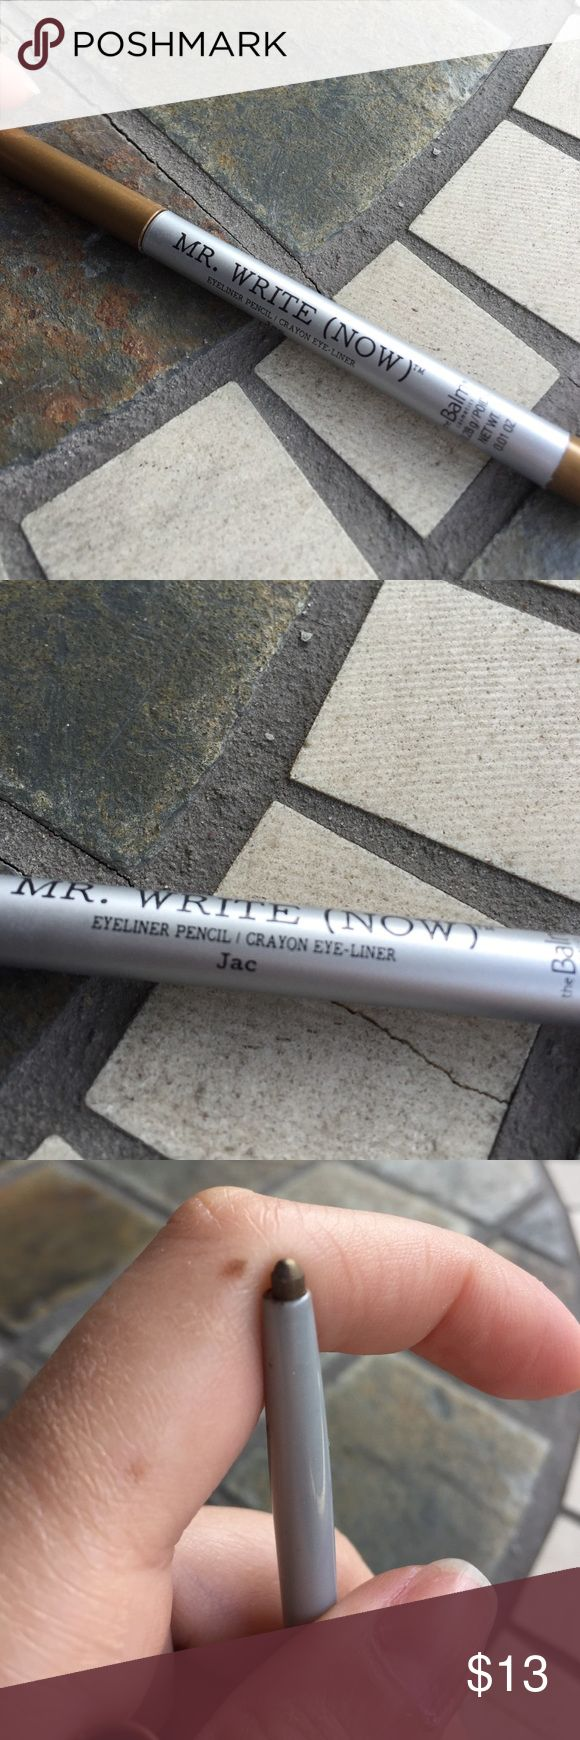 The balm mr write now eyeliner pencil! In shade Jac which is like a bronze shade. The Balm Makeup Eyeliner